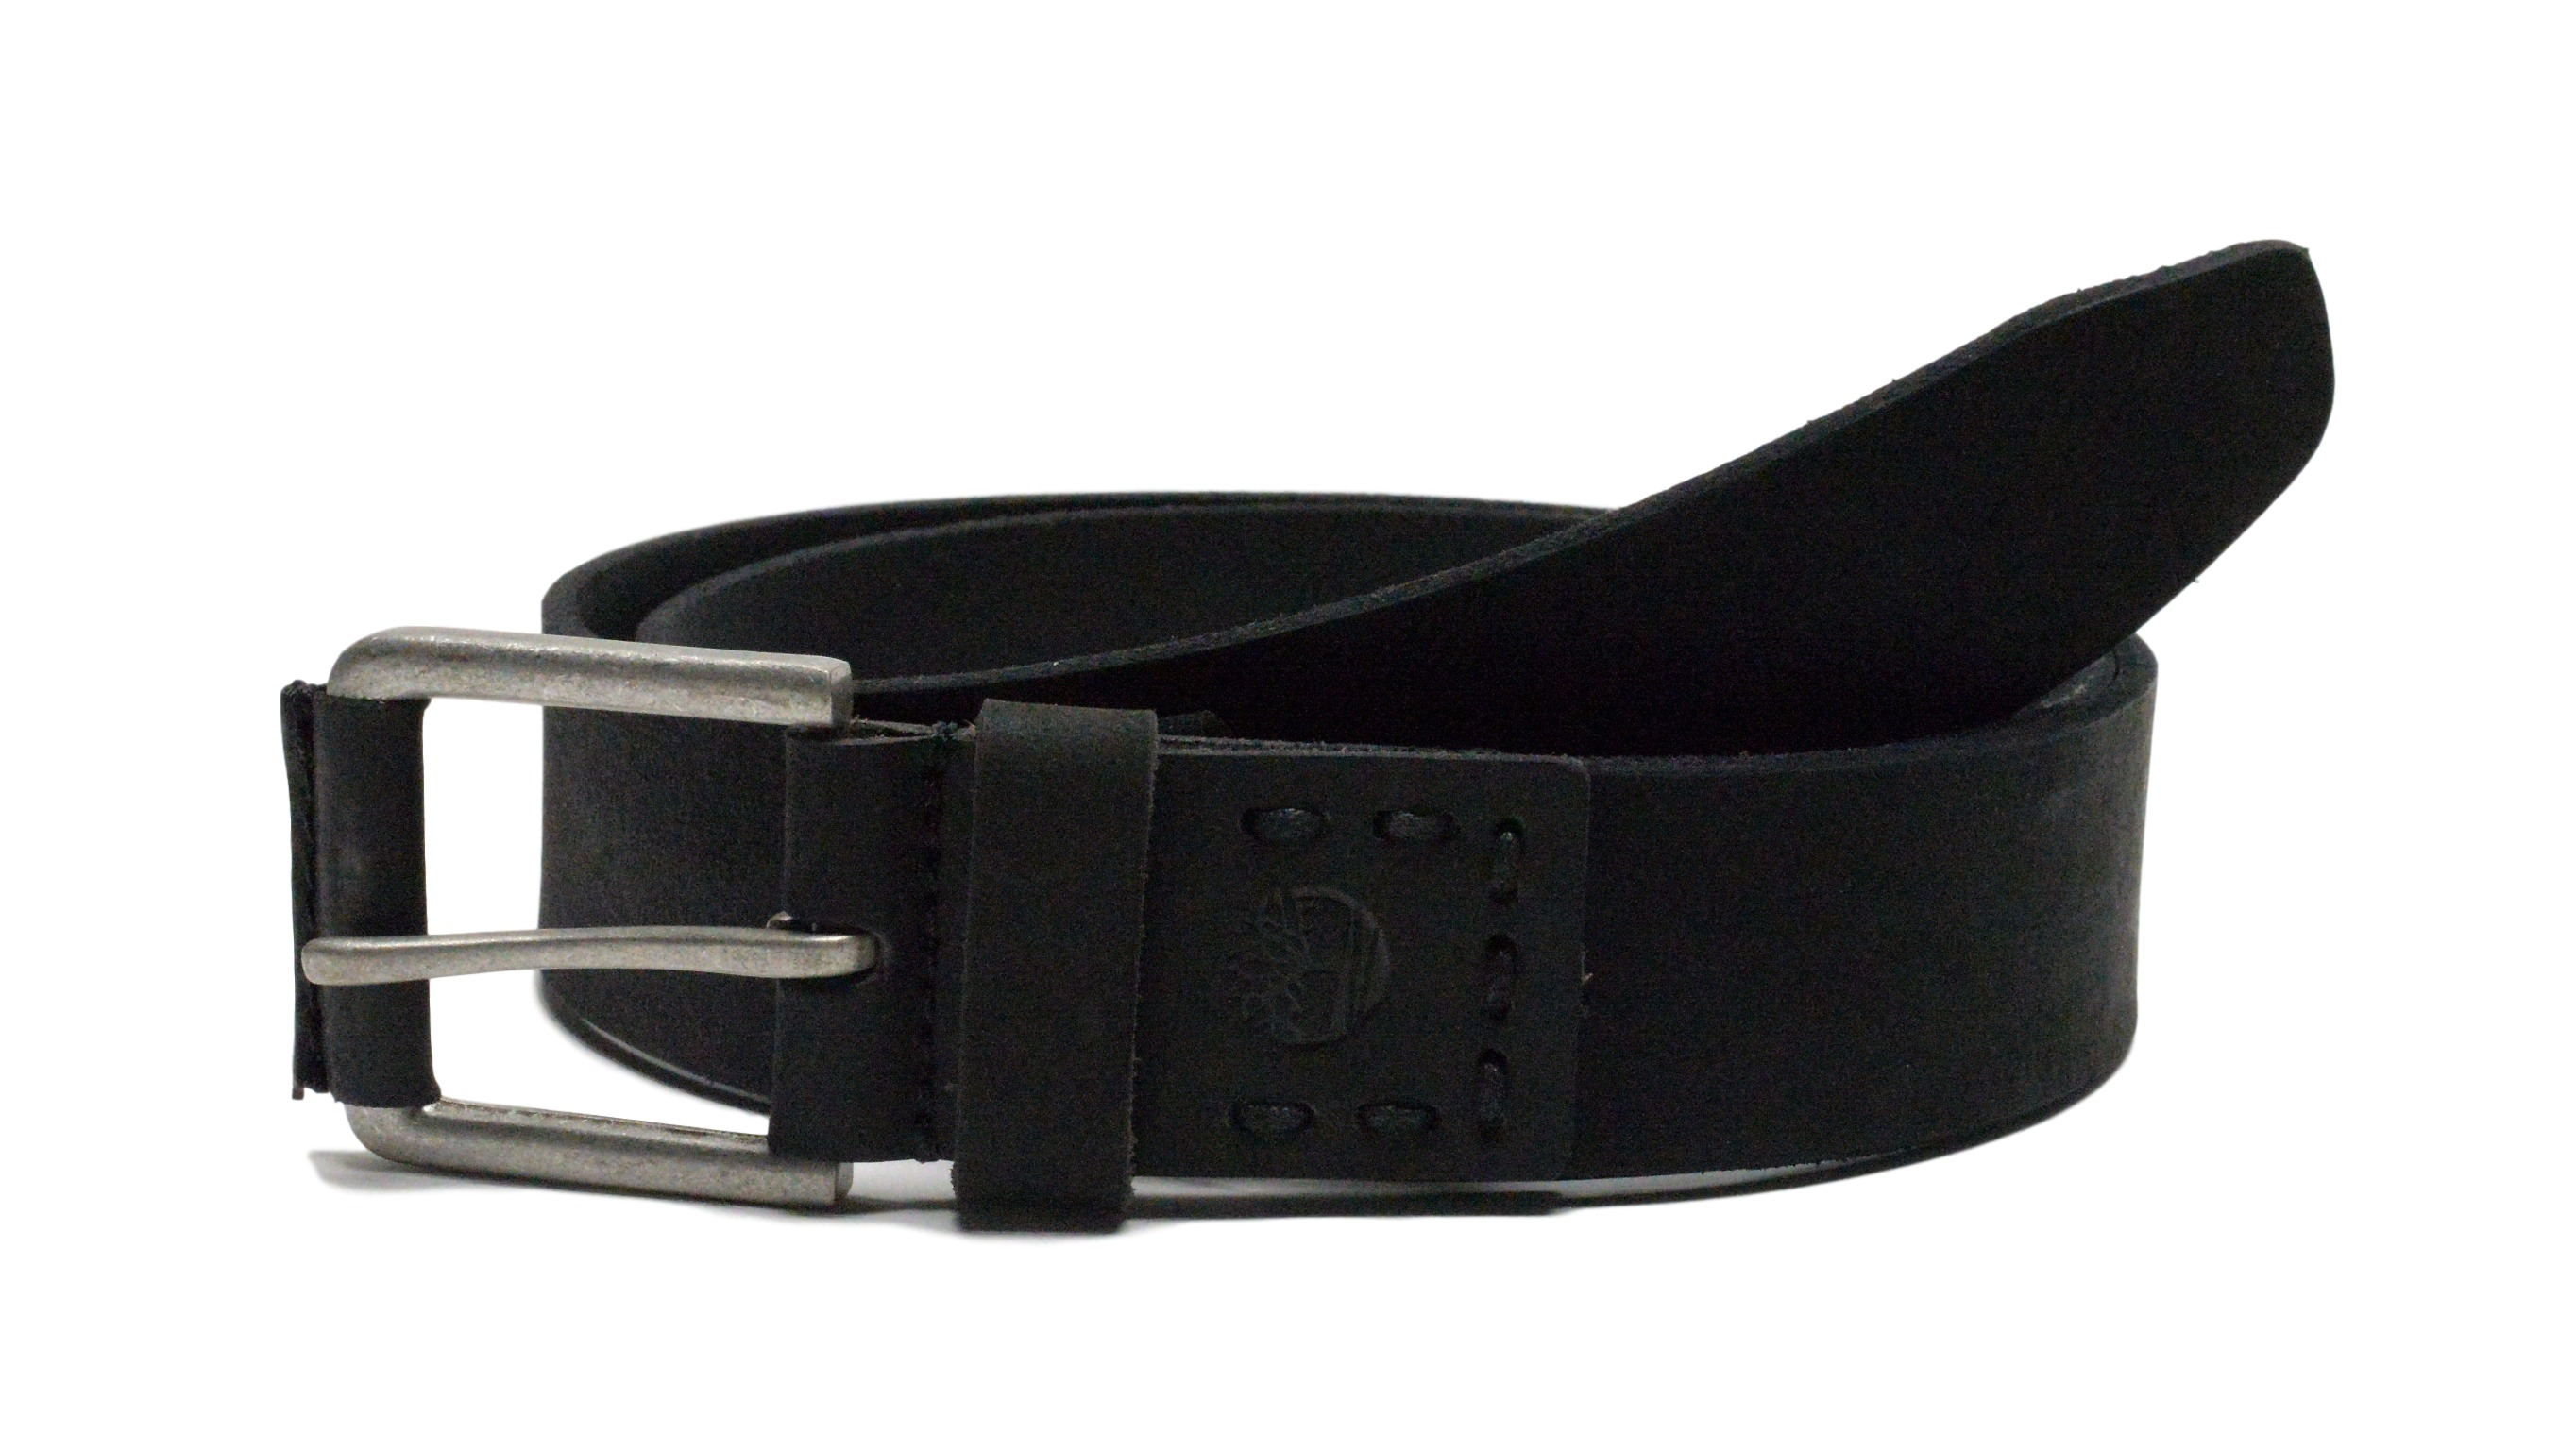 Timberland-Men-039-s-Casual-Distressed-Genuine-Leather-Belt thumbnail 8